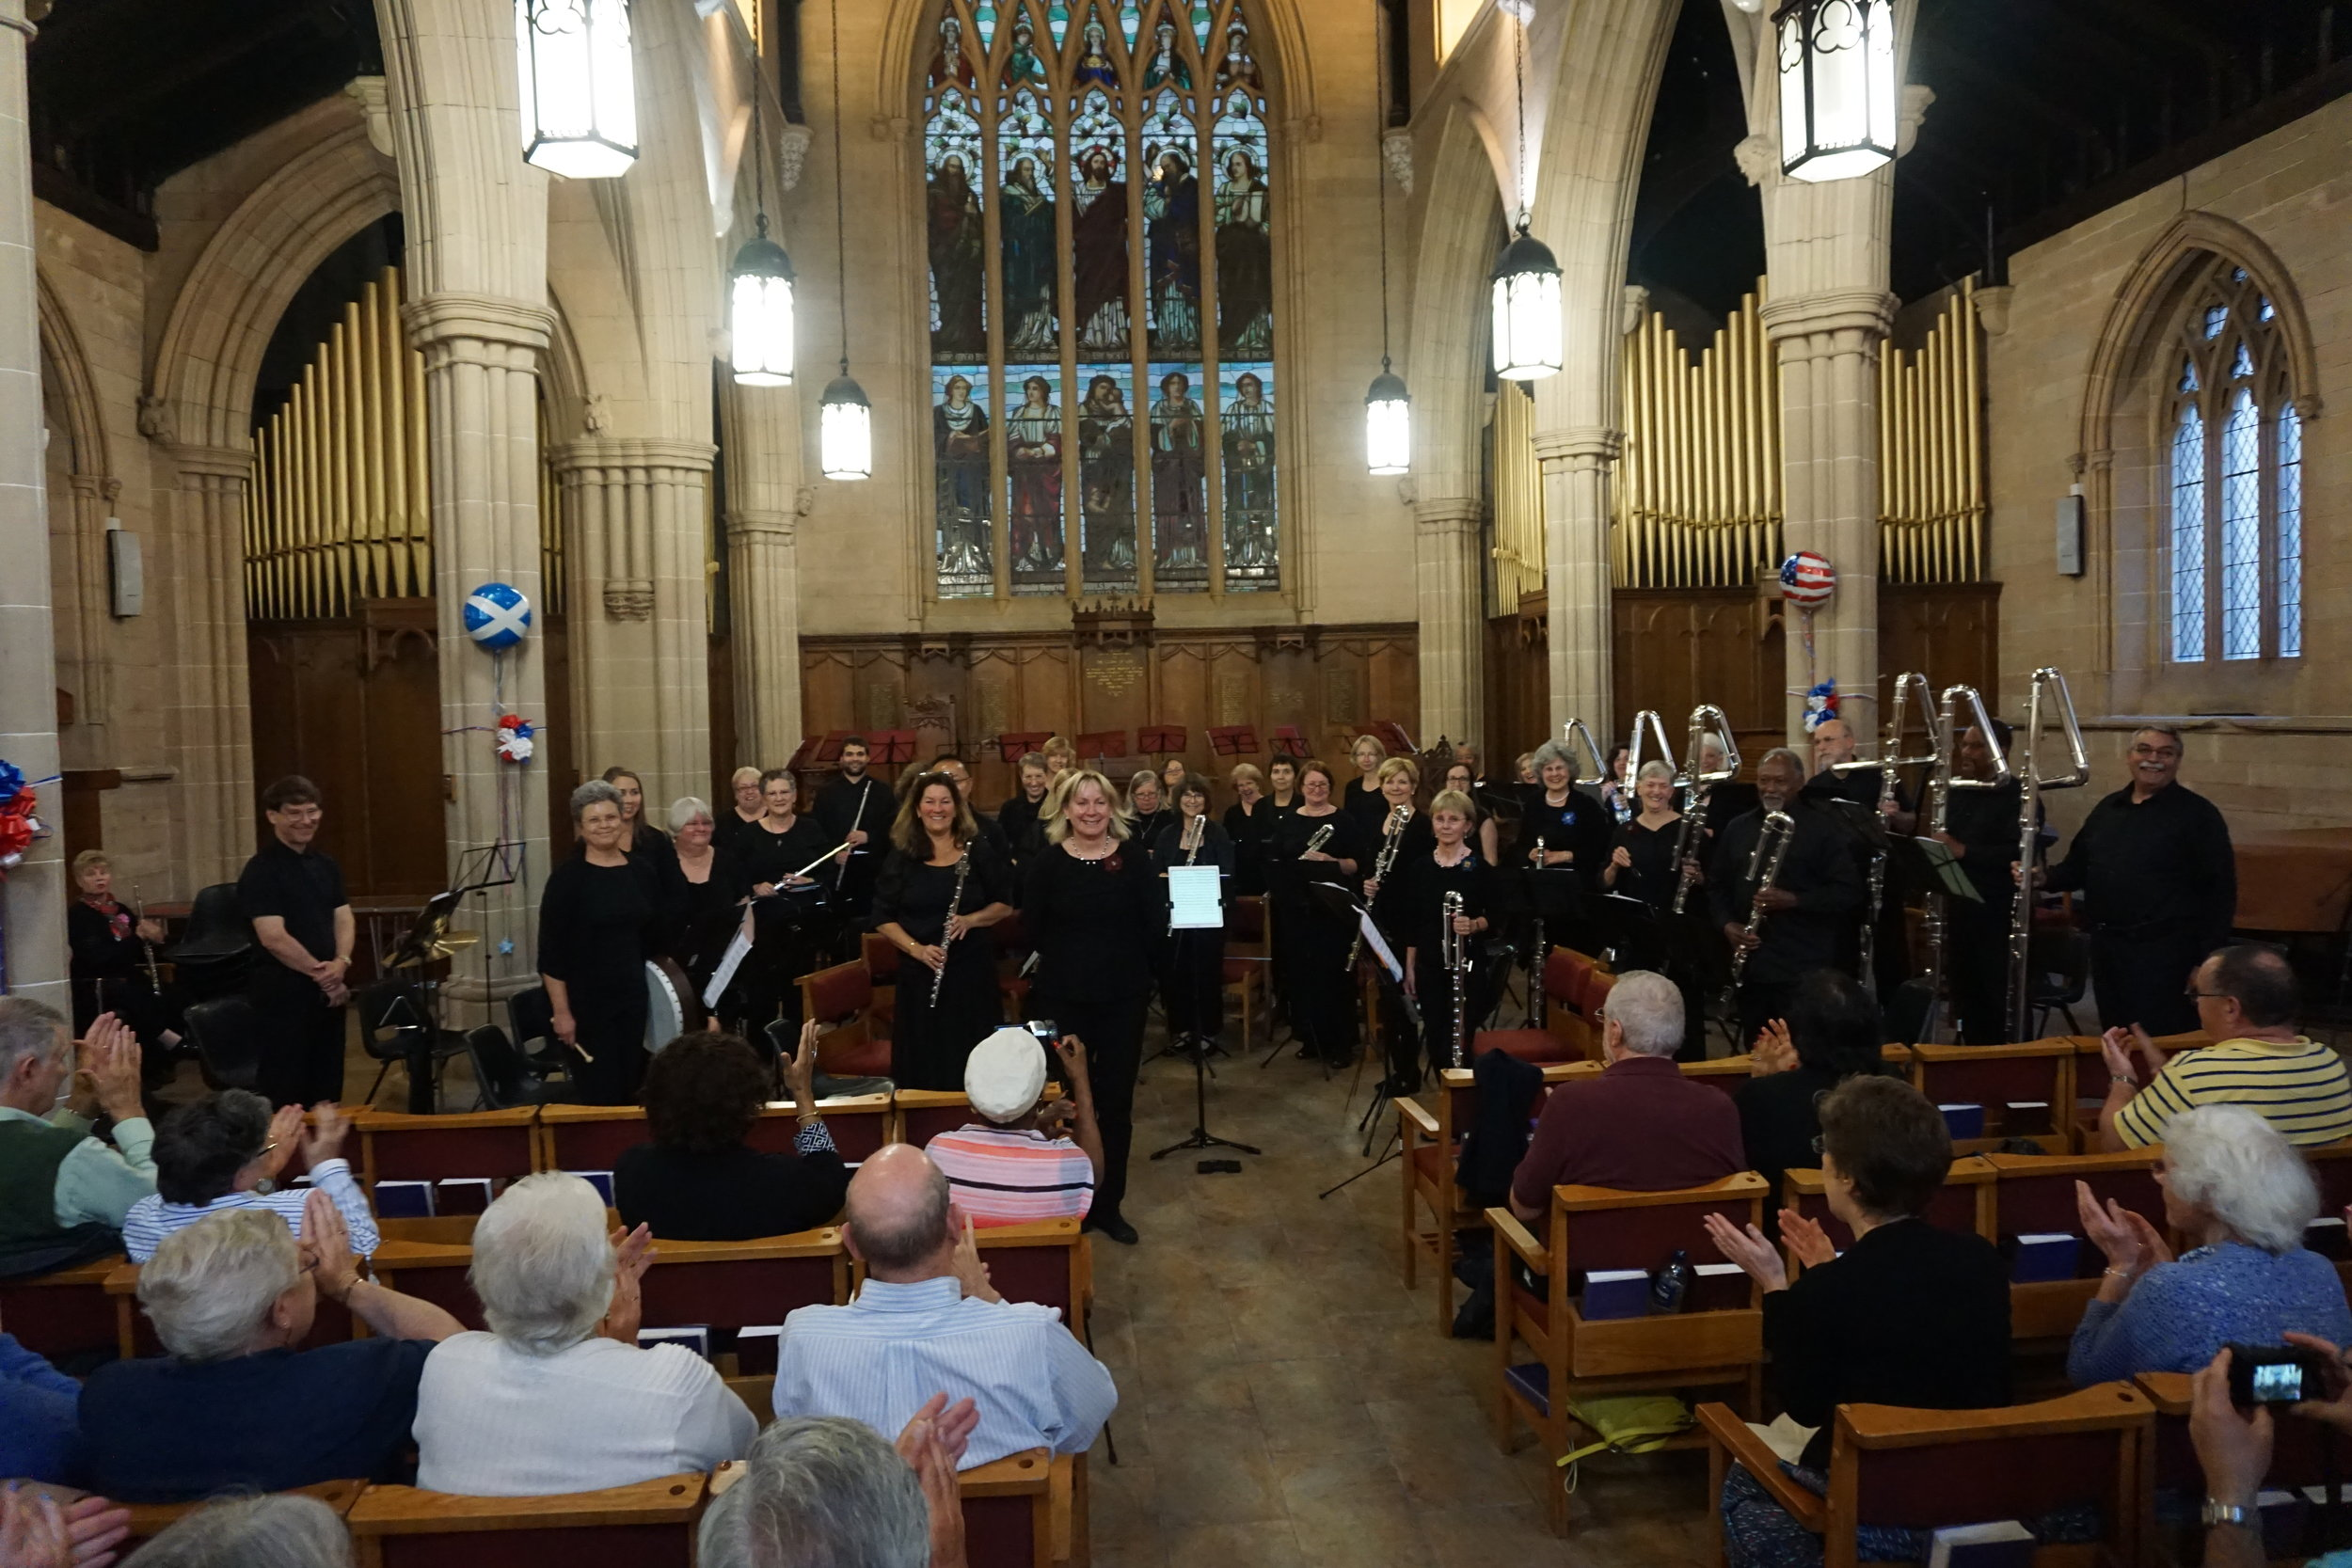 Metropolitan Flute Orchestra, performing in Glasgow, Scotland